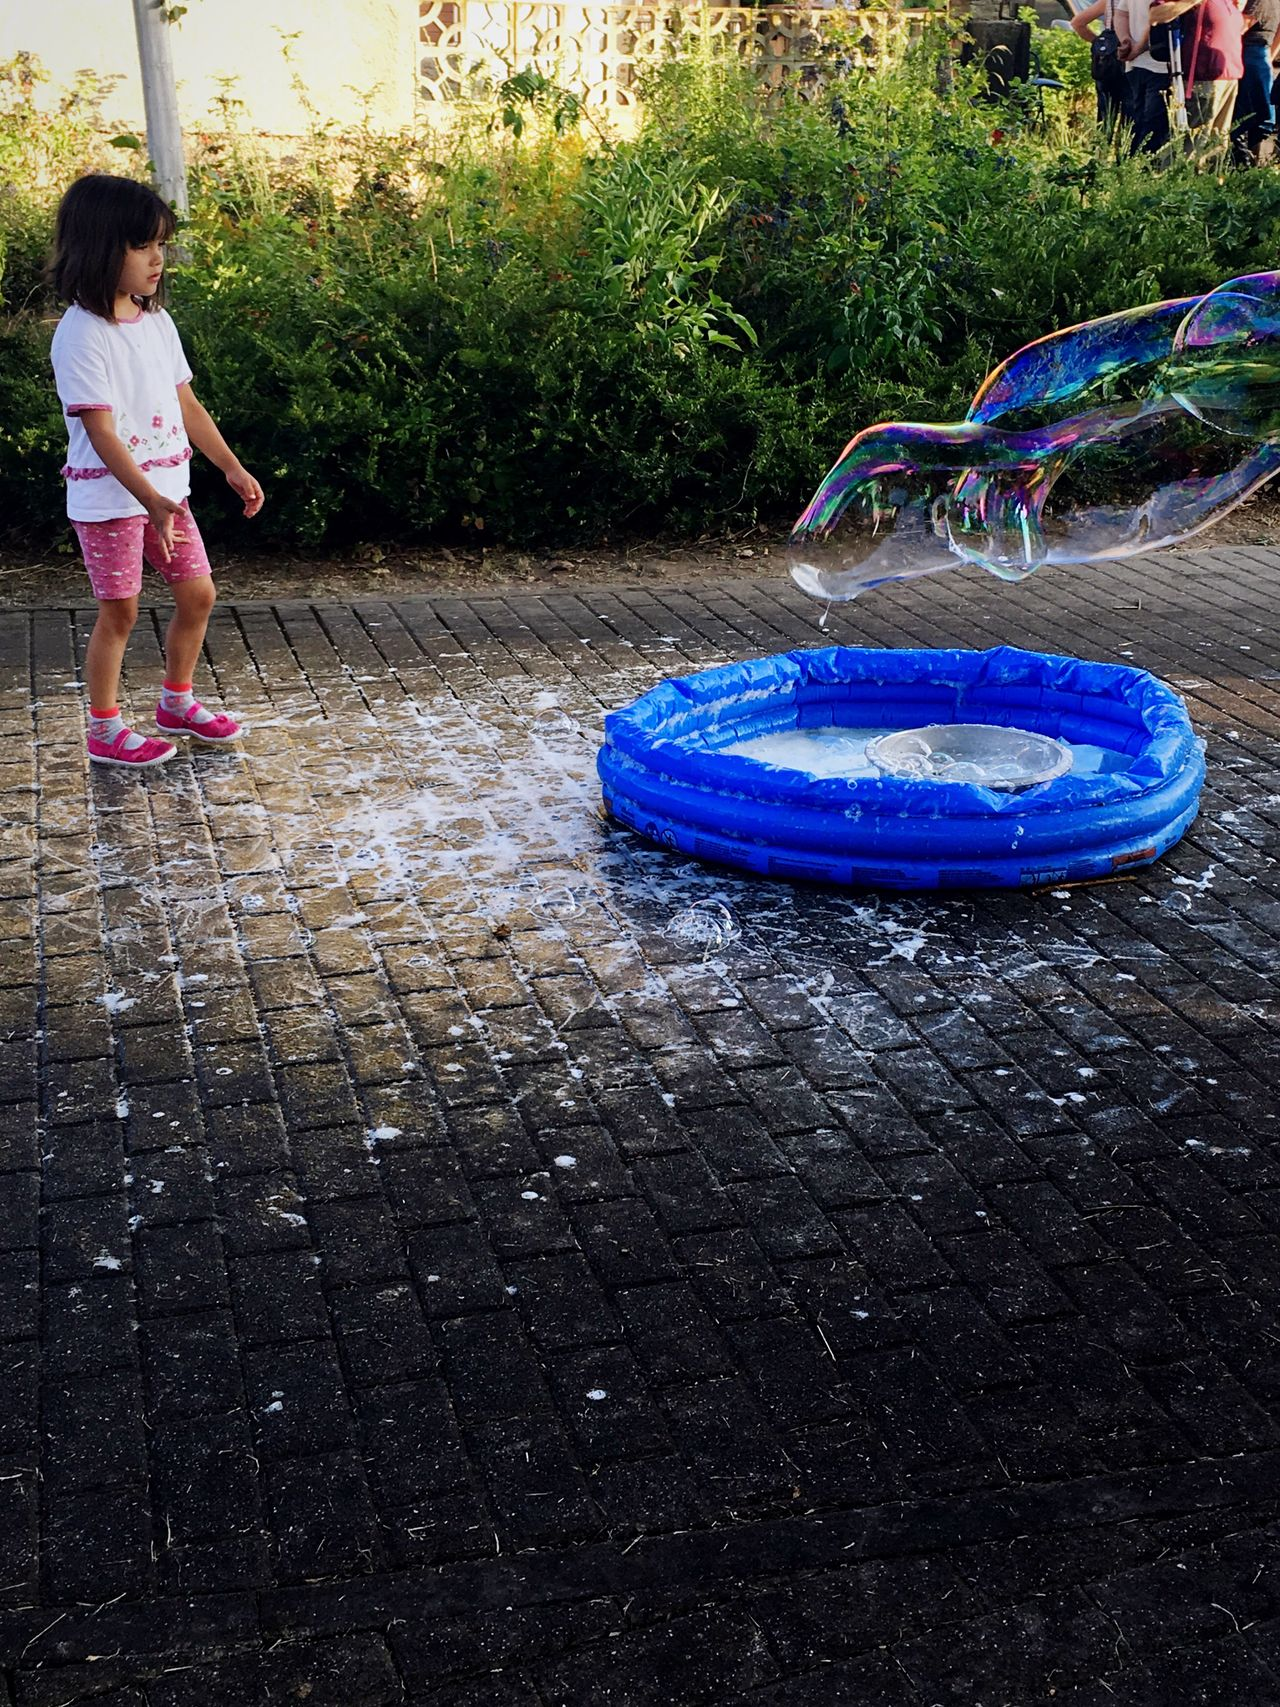 Young girl and a small pool with soap bubble at the street Childhood Outdoors Real People Full Length Day Water Playing One Person People Child Play Playtime Dream Daydream Daydreaming Lovely Bubble Bubbles Small Cool Pool Nice Nice Atmosphere Great View